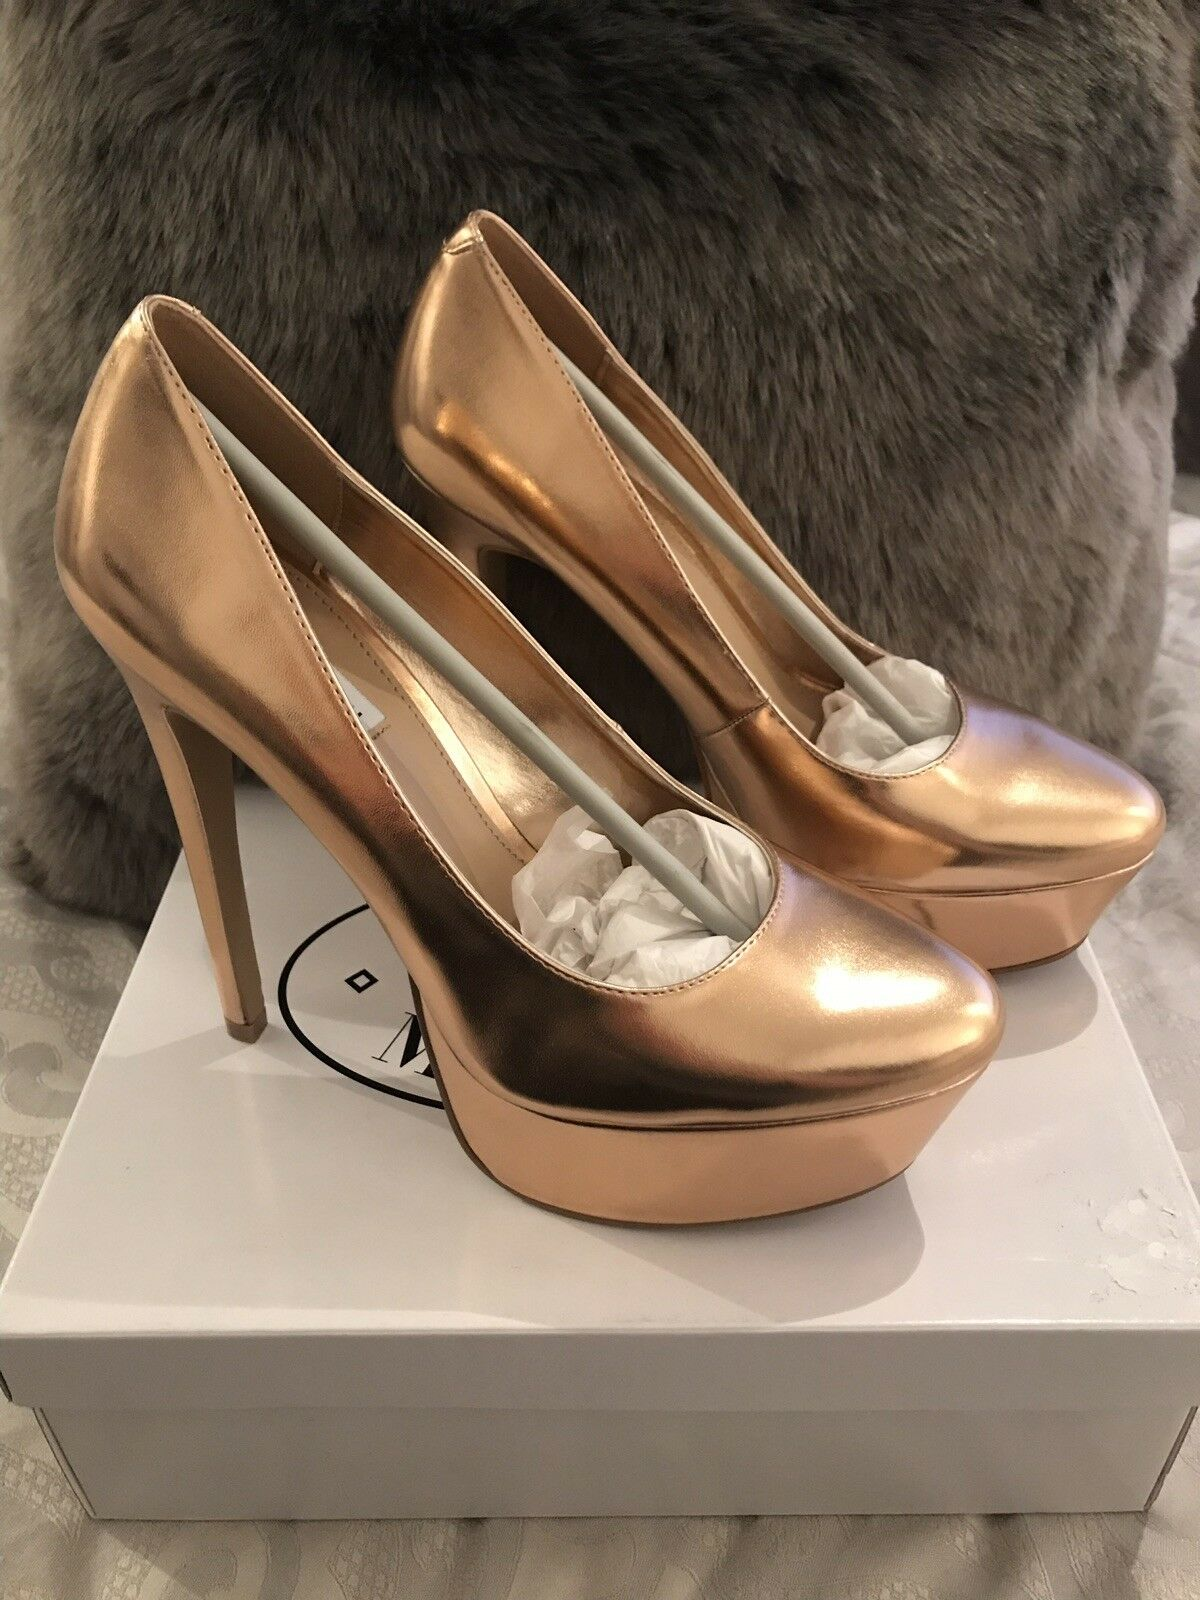 b4f0ee12308 Brand New Steve Madden 'Deserve' Heels In gold UK 7 US 9 EU 40 pink ...